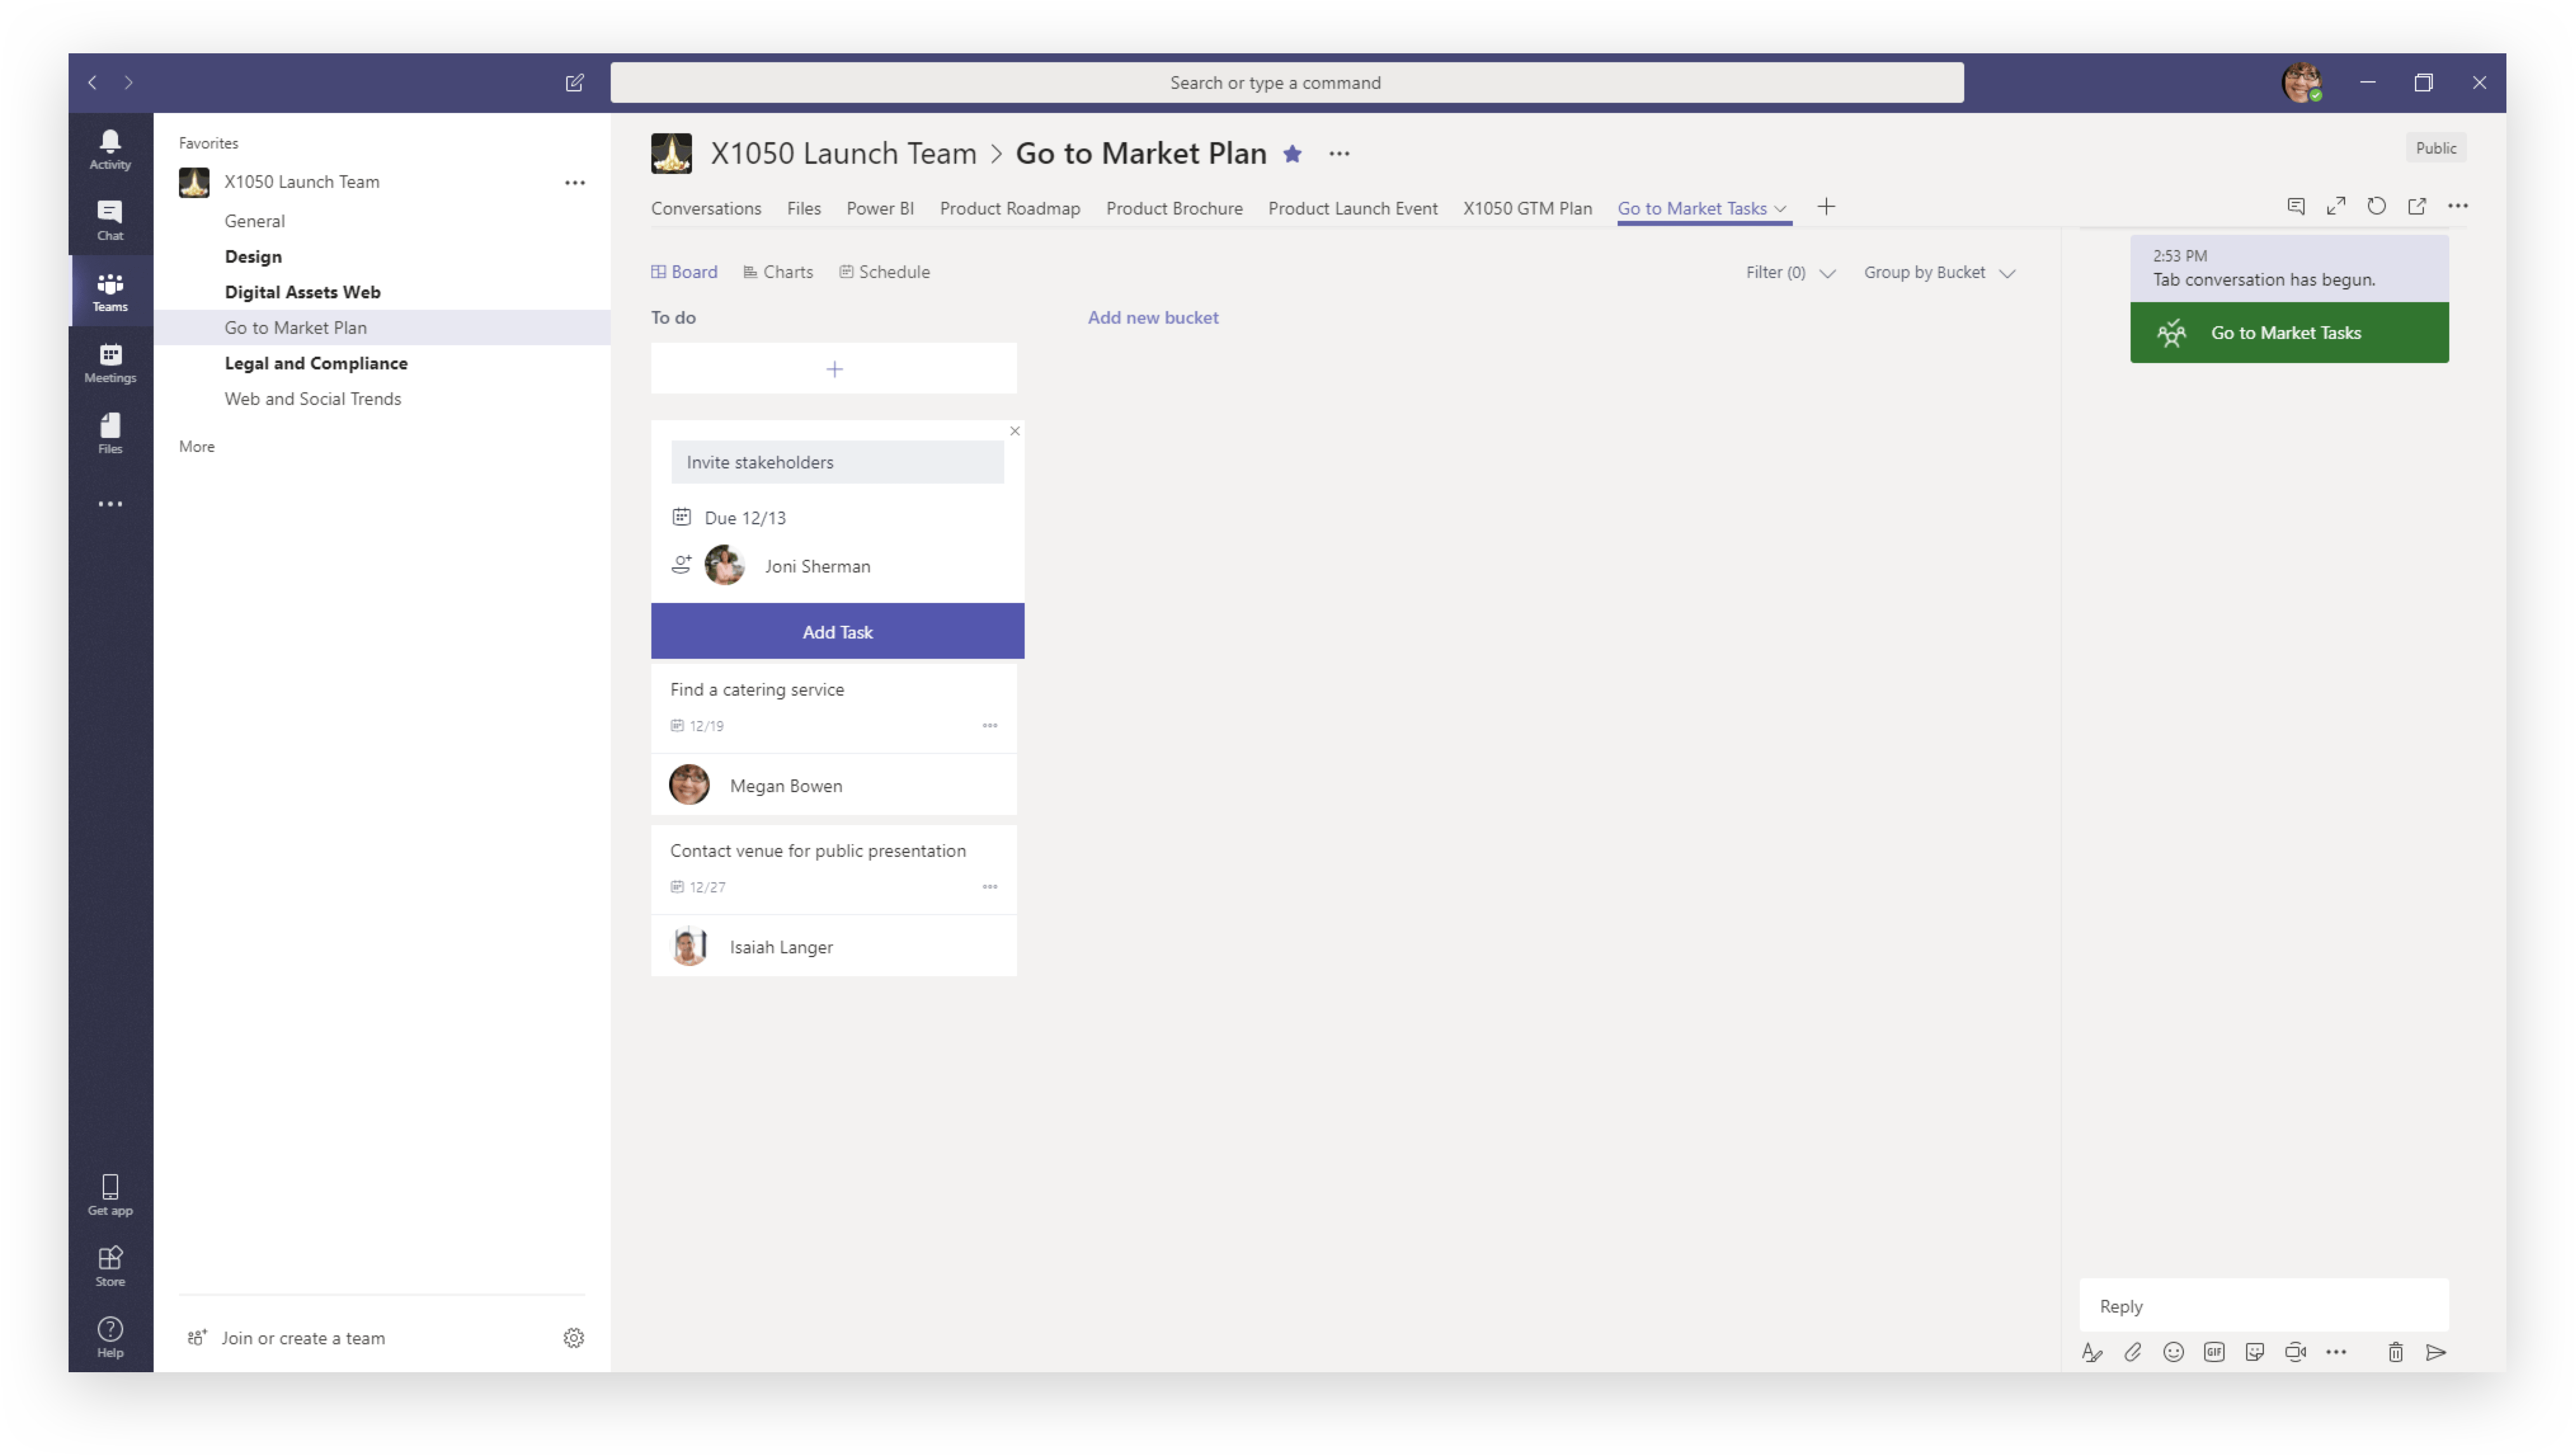 Assigning tasks with Planner in Teams